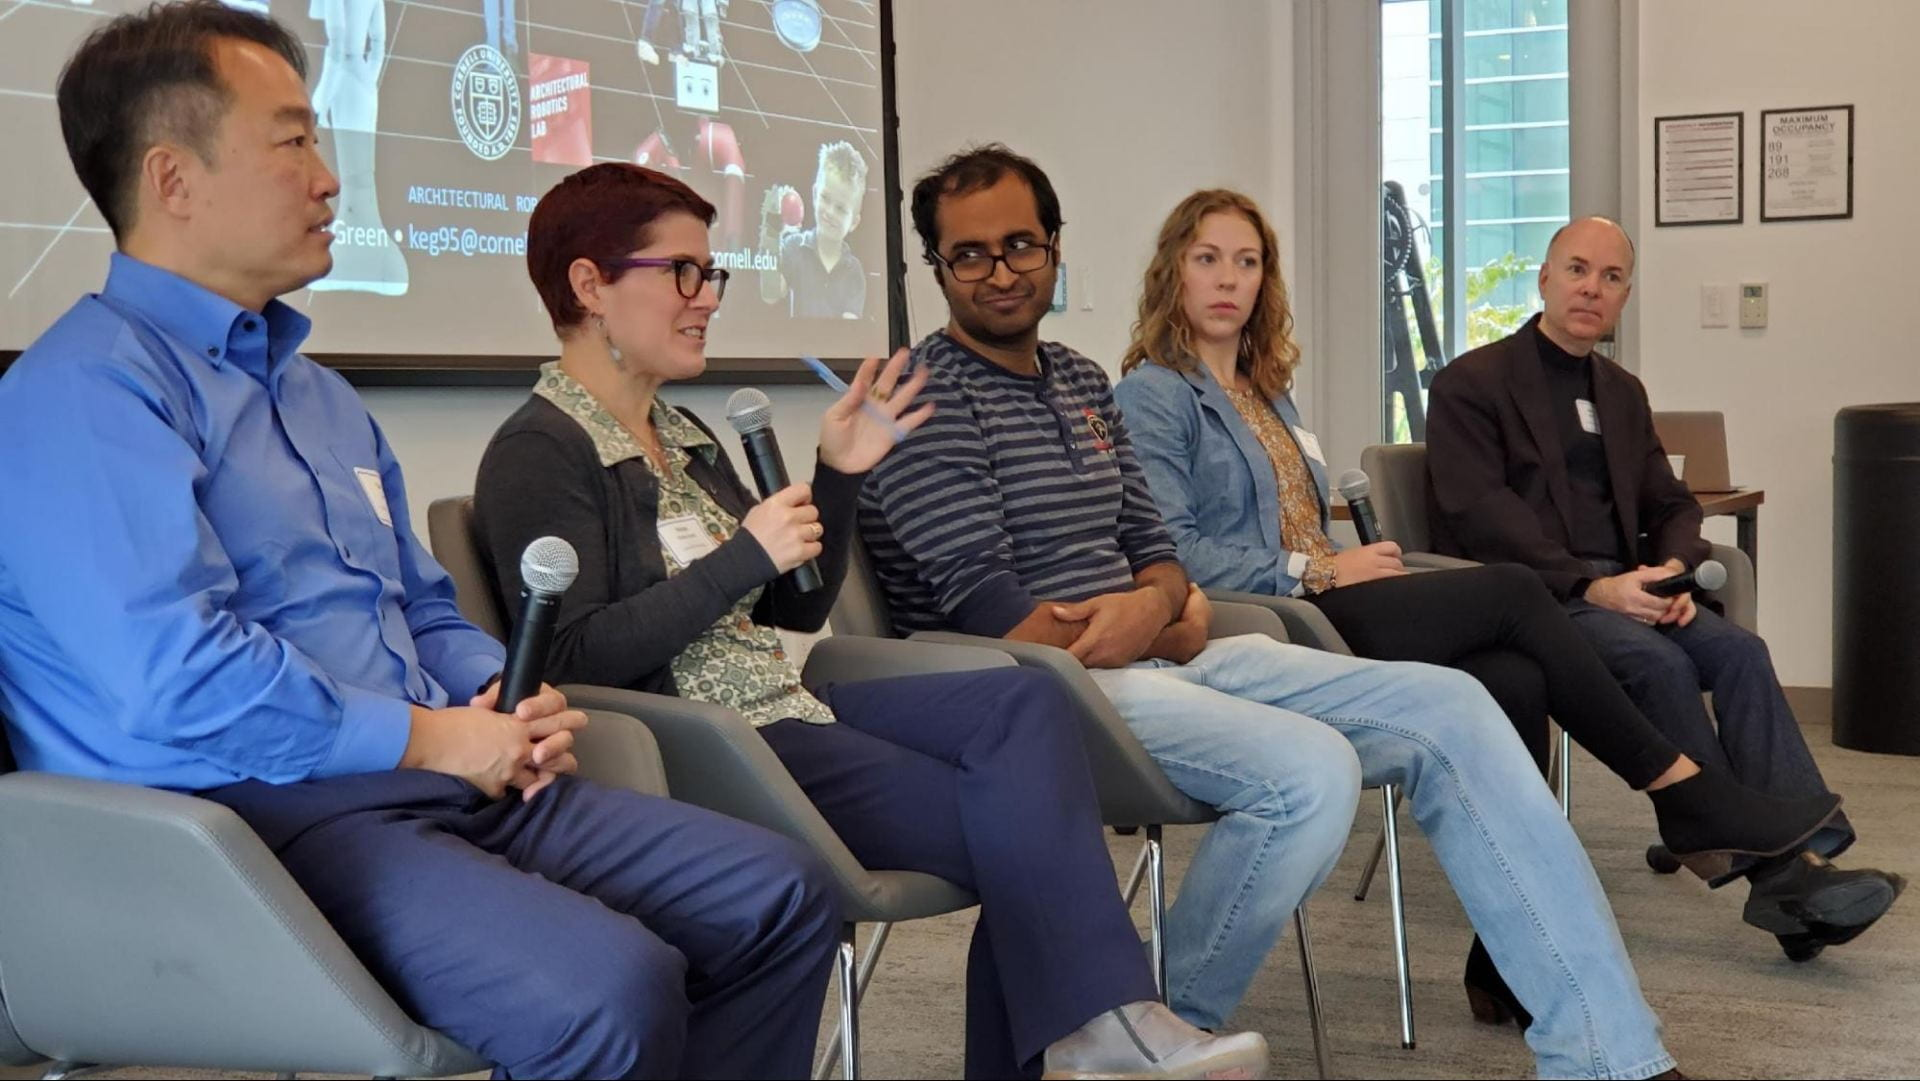 "Speakers in Session I ""Embracing the Messy World: Robotics at Cornell"", formed a panel to address audience questions about Robotics research at Cornell. From left to right, Prof. Dan Lee, Prof. Hadas Kress-Gazit, Prof. Bharath Hariharan, PhD student Maura O'Neill (representing Prof. Rob Shepherd's Organic Robotics Lab), and Prof. Keith Green."